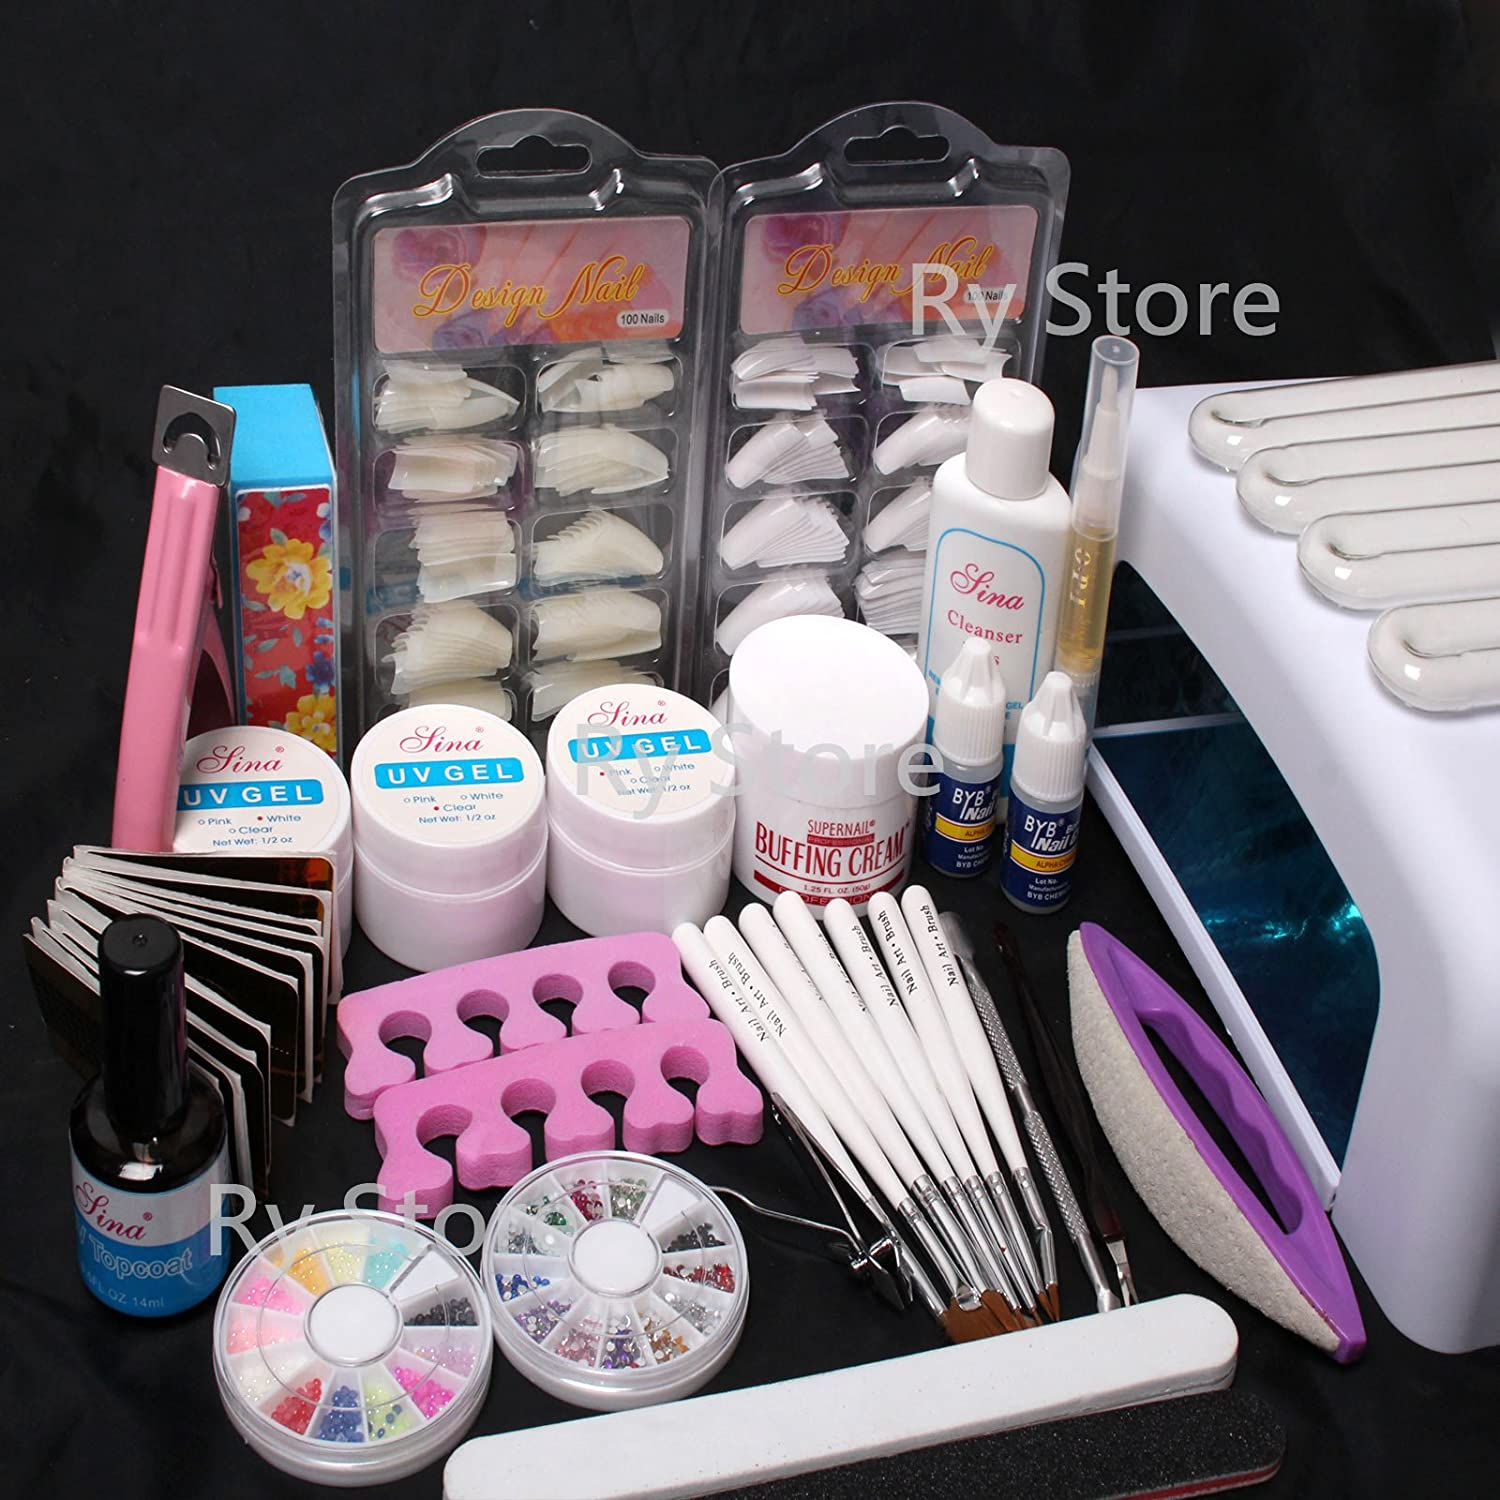 Amazon 25 in 1 professional nail art uv gel kit 36w uv lamp amazon 25 in 1 professional nail art uv gel kit 36w uv lamp timer dryer brush buffer tool cuticle pusher sand block files side clipper top coat nail prinsesfo Image collections